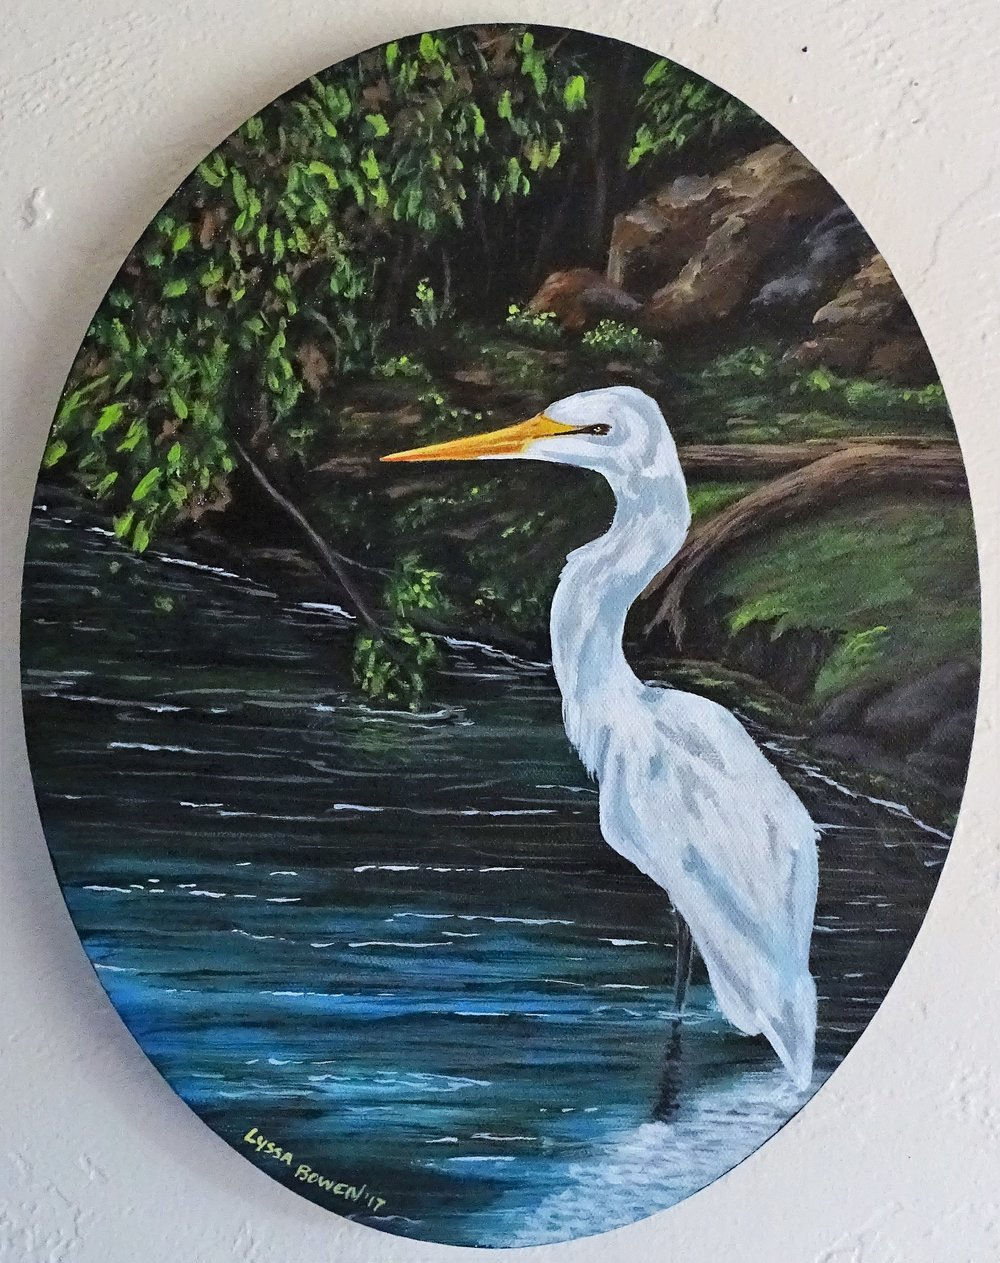 """Egret""  acrylic on canvas"